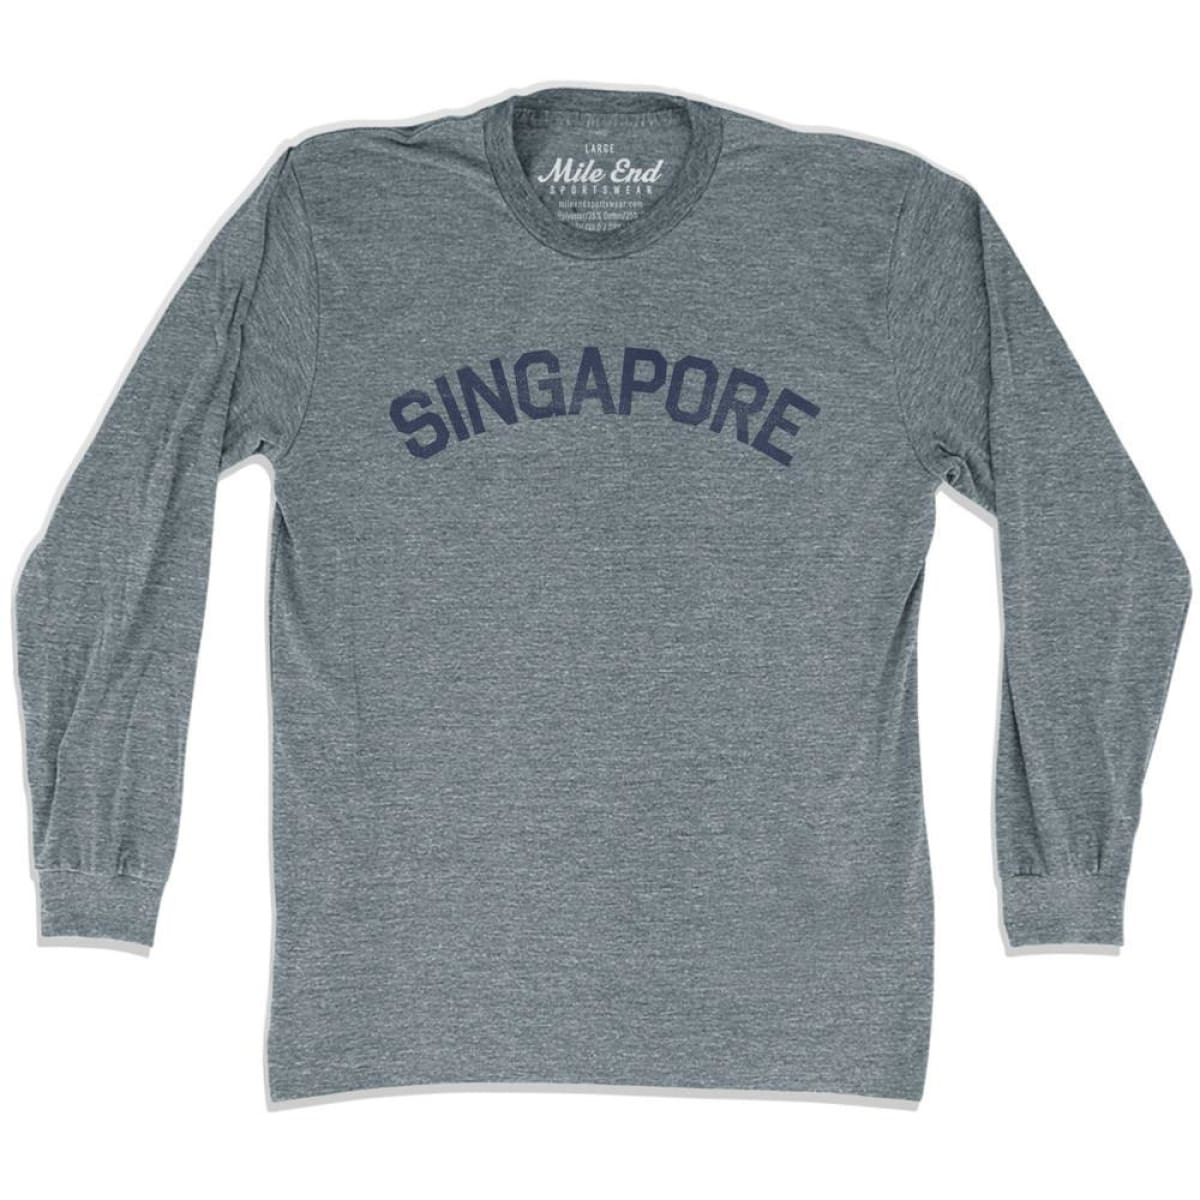 Singapore City Vintage Long Sleeve T-Shirt - Athletic Grey / Adult X-Small - Mile End City